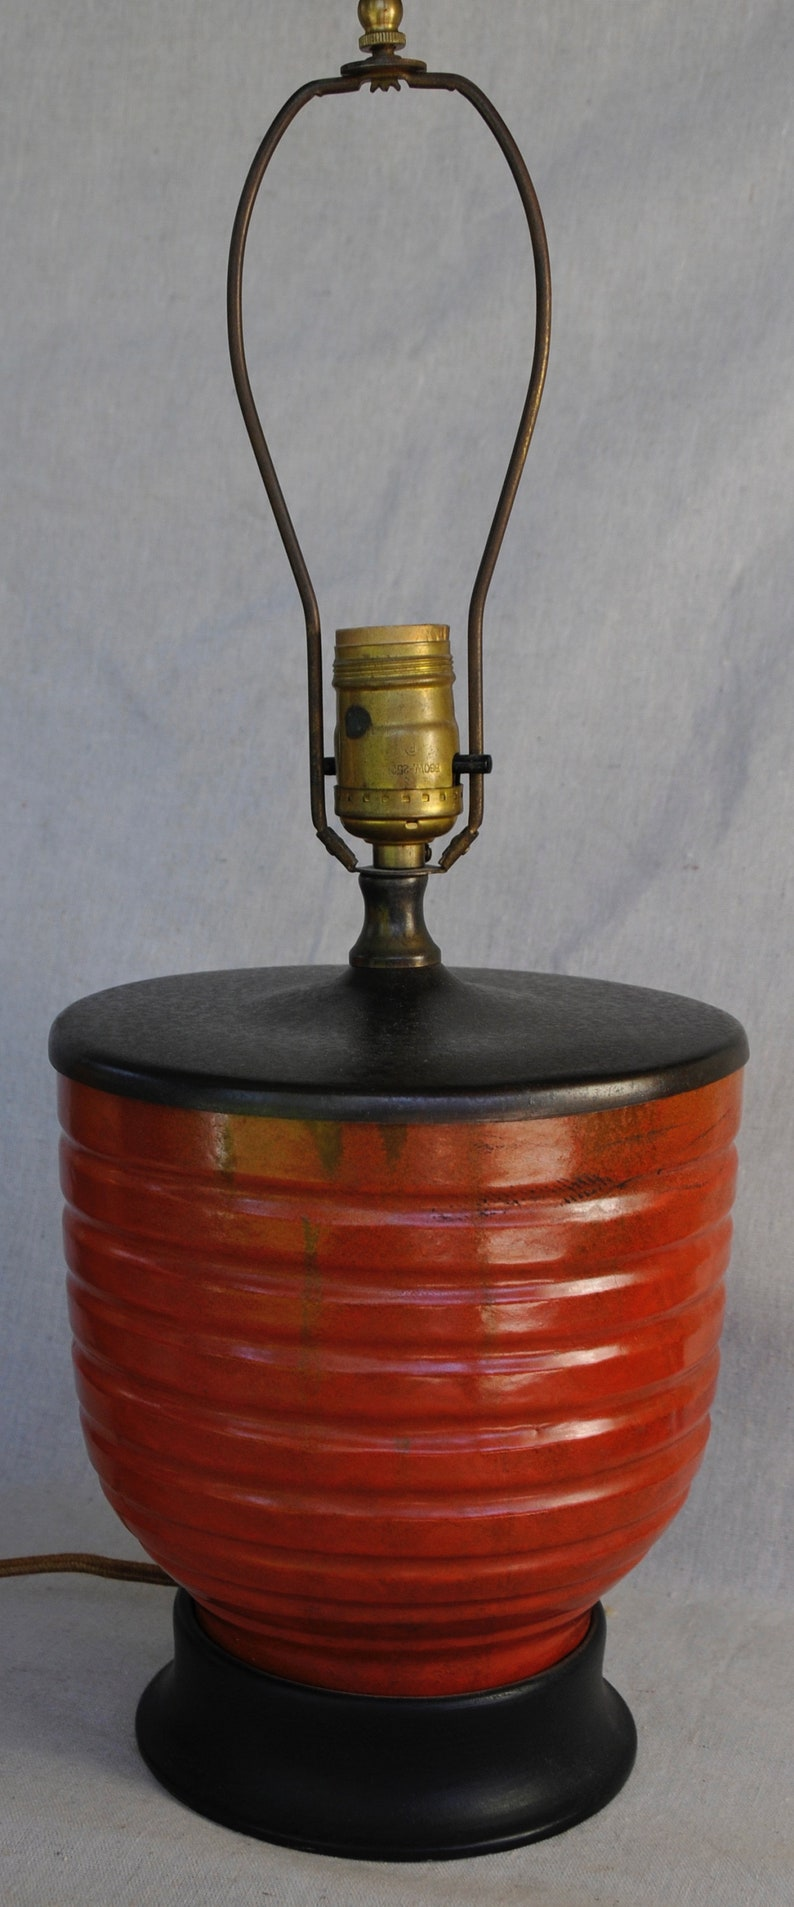 Catalina Ringed Flowerpot Lamp Toyon Orange image 0